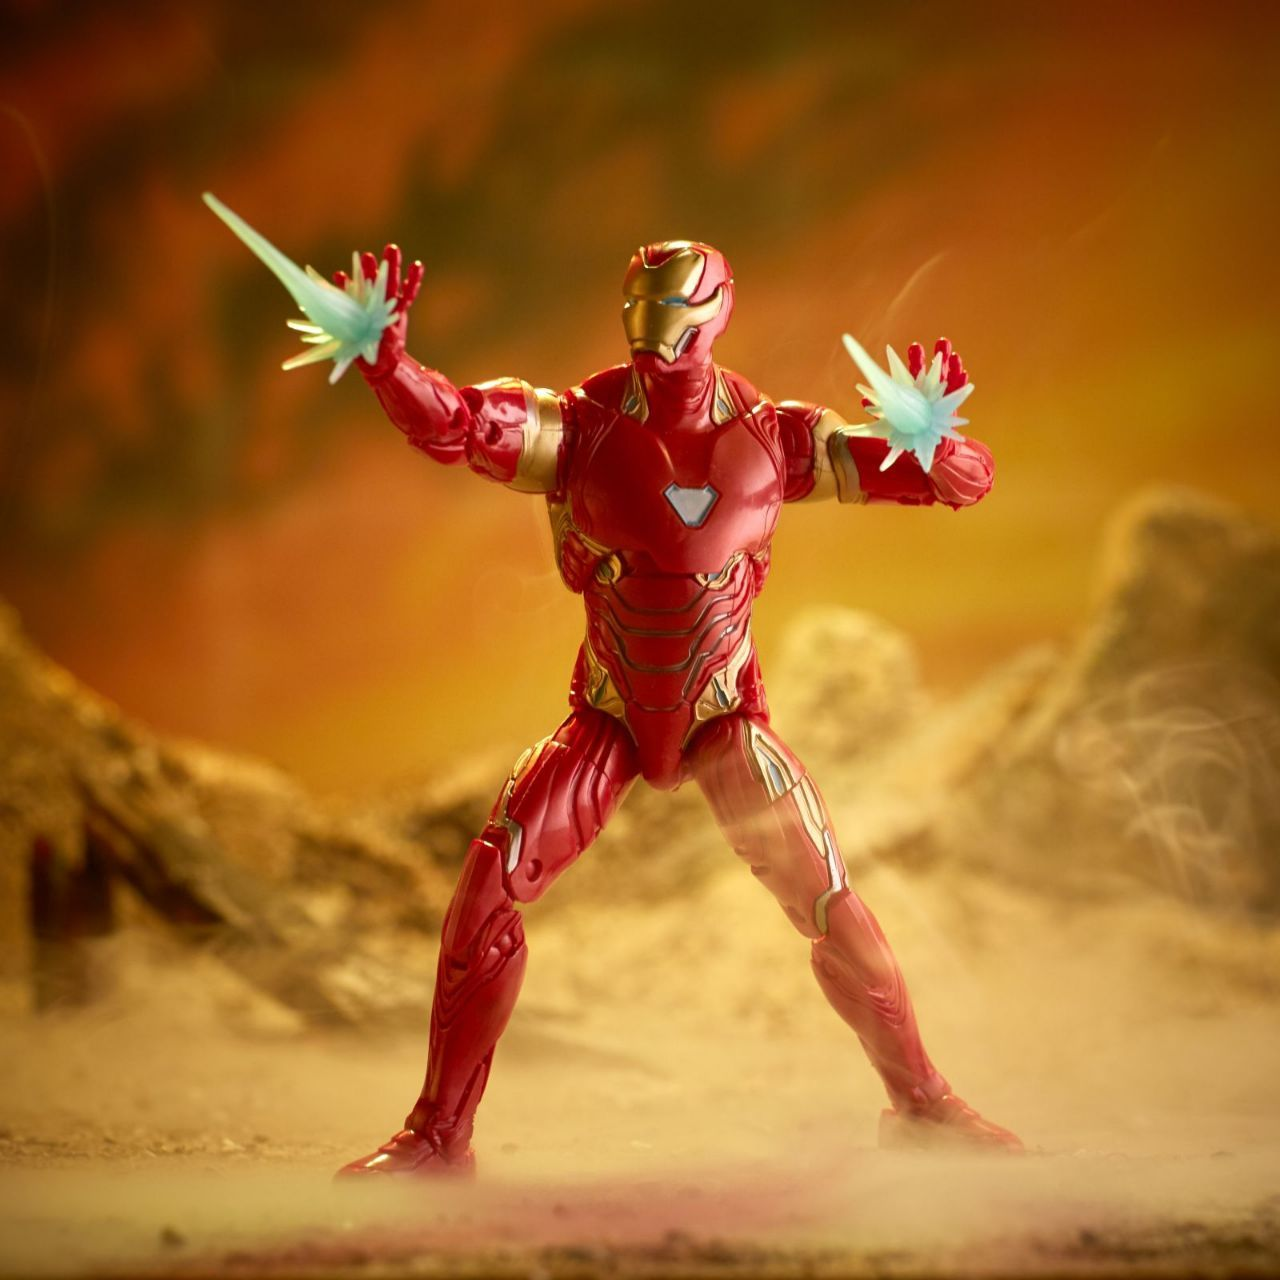 Avengers Infinity War Hasbro Figures - Iron Man Bleeding Edge